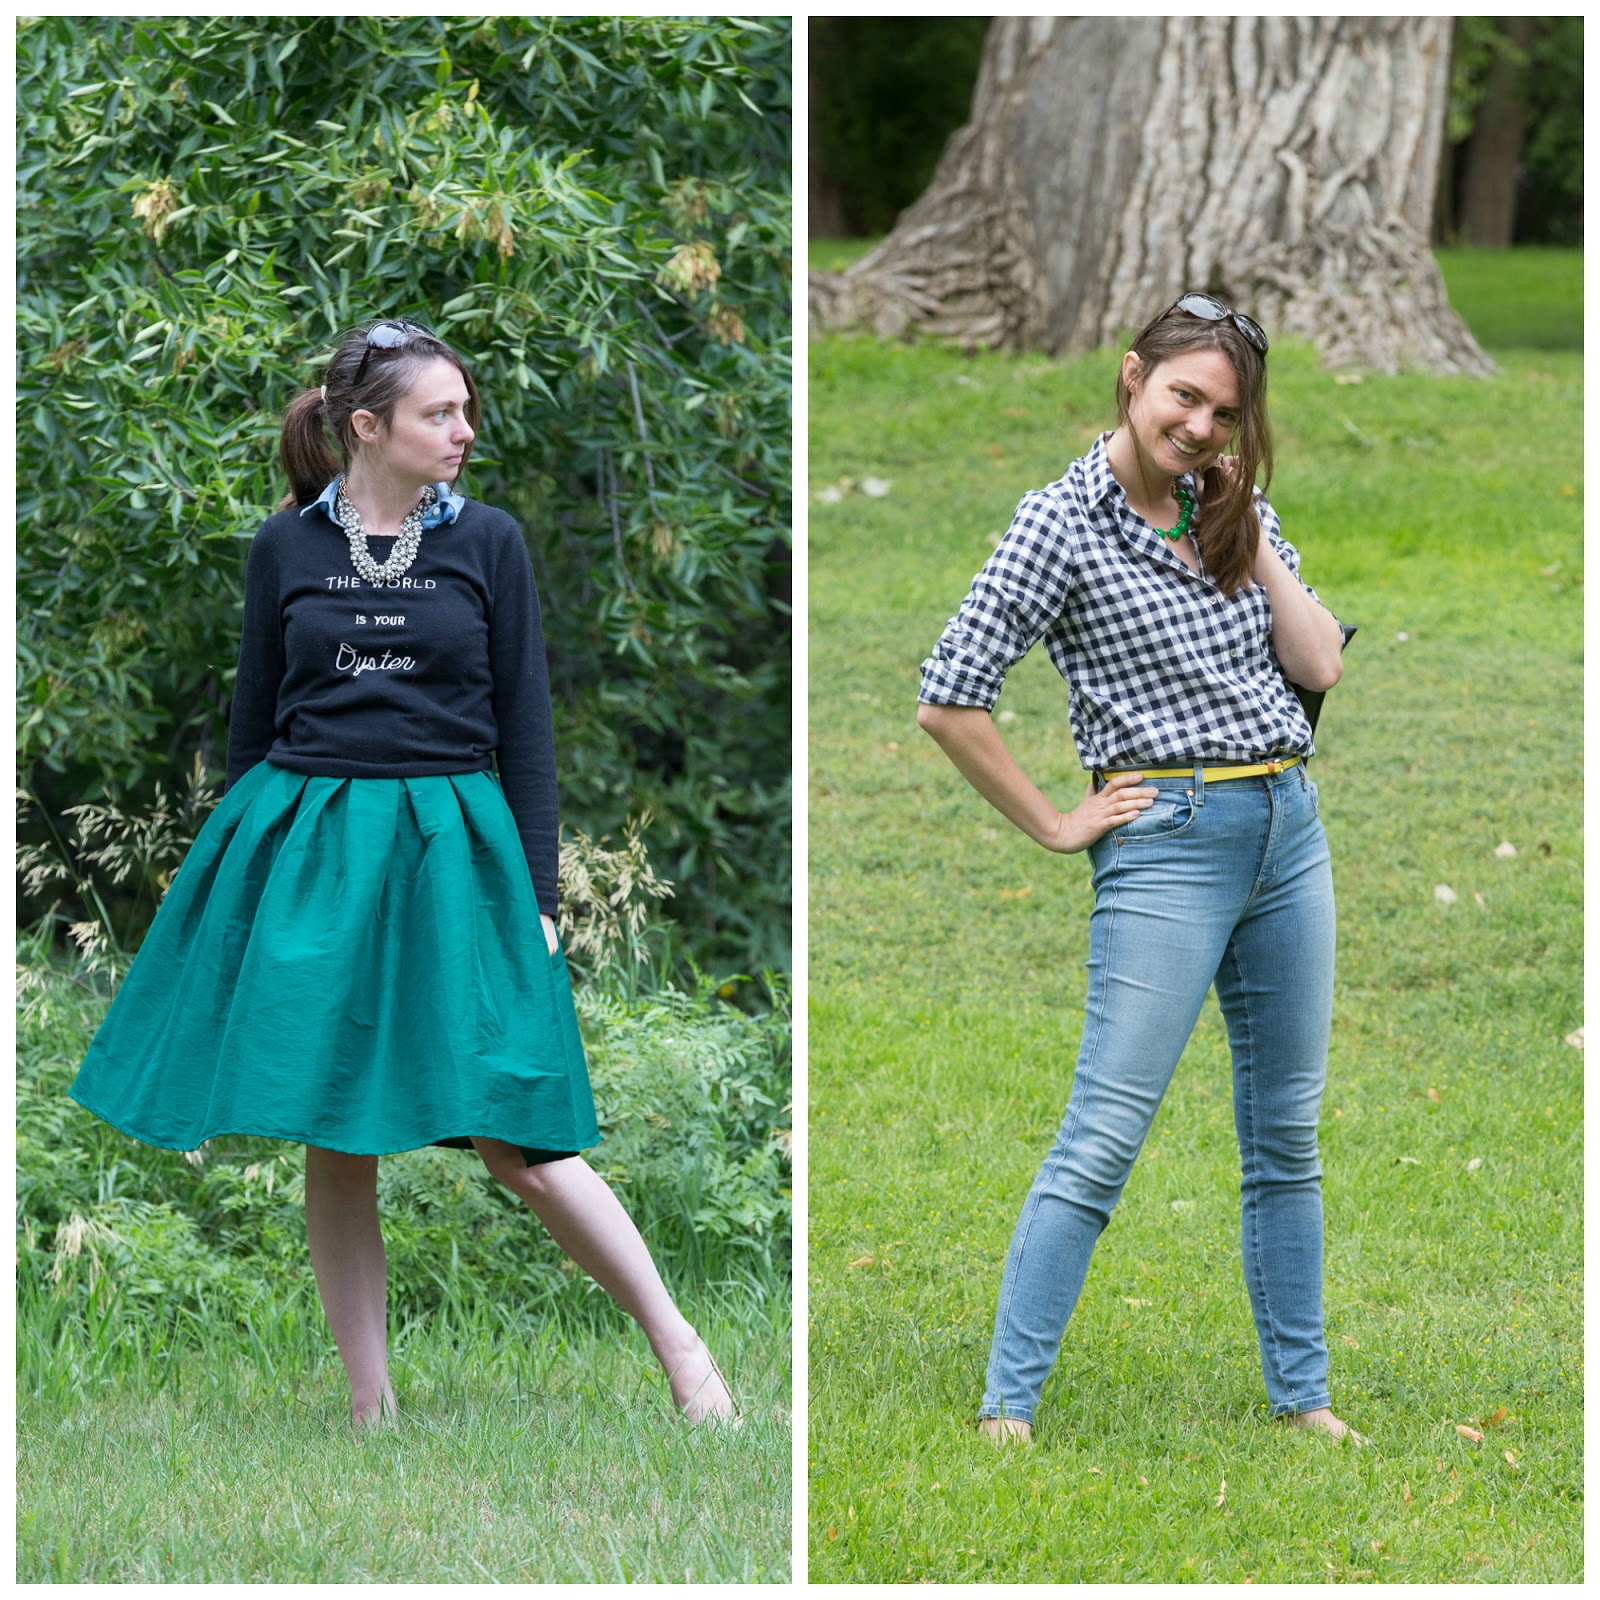 cllothing, style blogger, blogger, wyoming blogger, pearls, gingham shirt, green skirt,